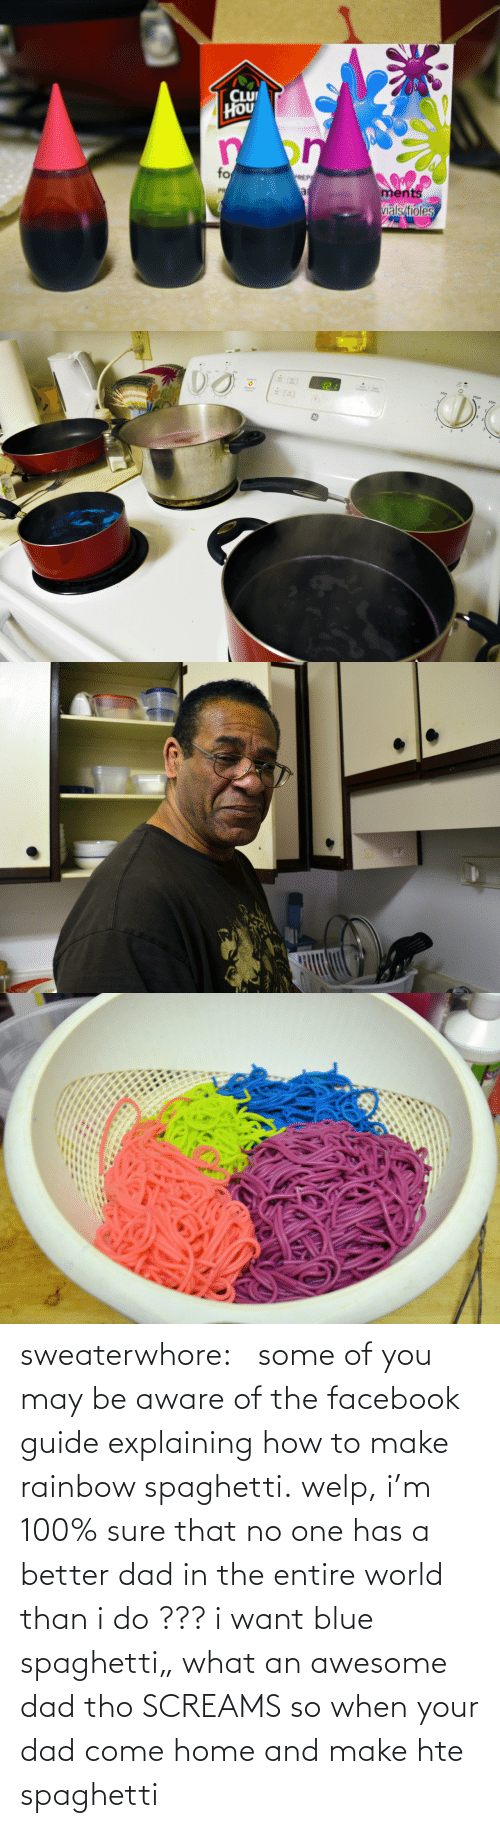 "Awesome Dad: CLU  HOU  on  fo  PREP  ments  vials/fioles  PR  al sweaterwhore:         some of you may be aware of the facebook guide explaining how to make rainbow spaghetti. welp, i'm 100% sure that no one has a better dad in the entire world than i do  ??? i want blue spaghetti""  what an awesome dad tho  SCREAMS  so when your dad come home and make hte spaghetti"